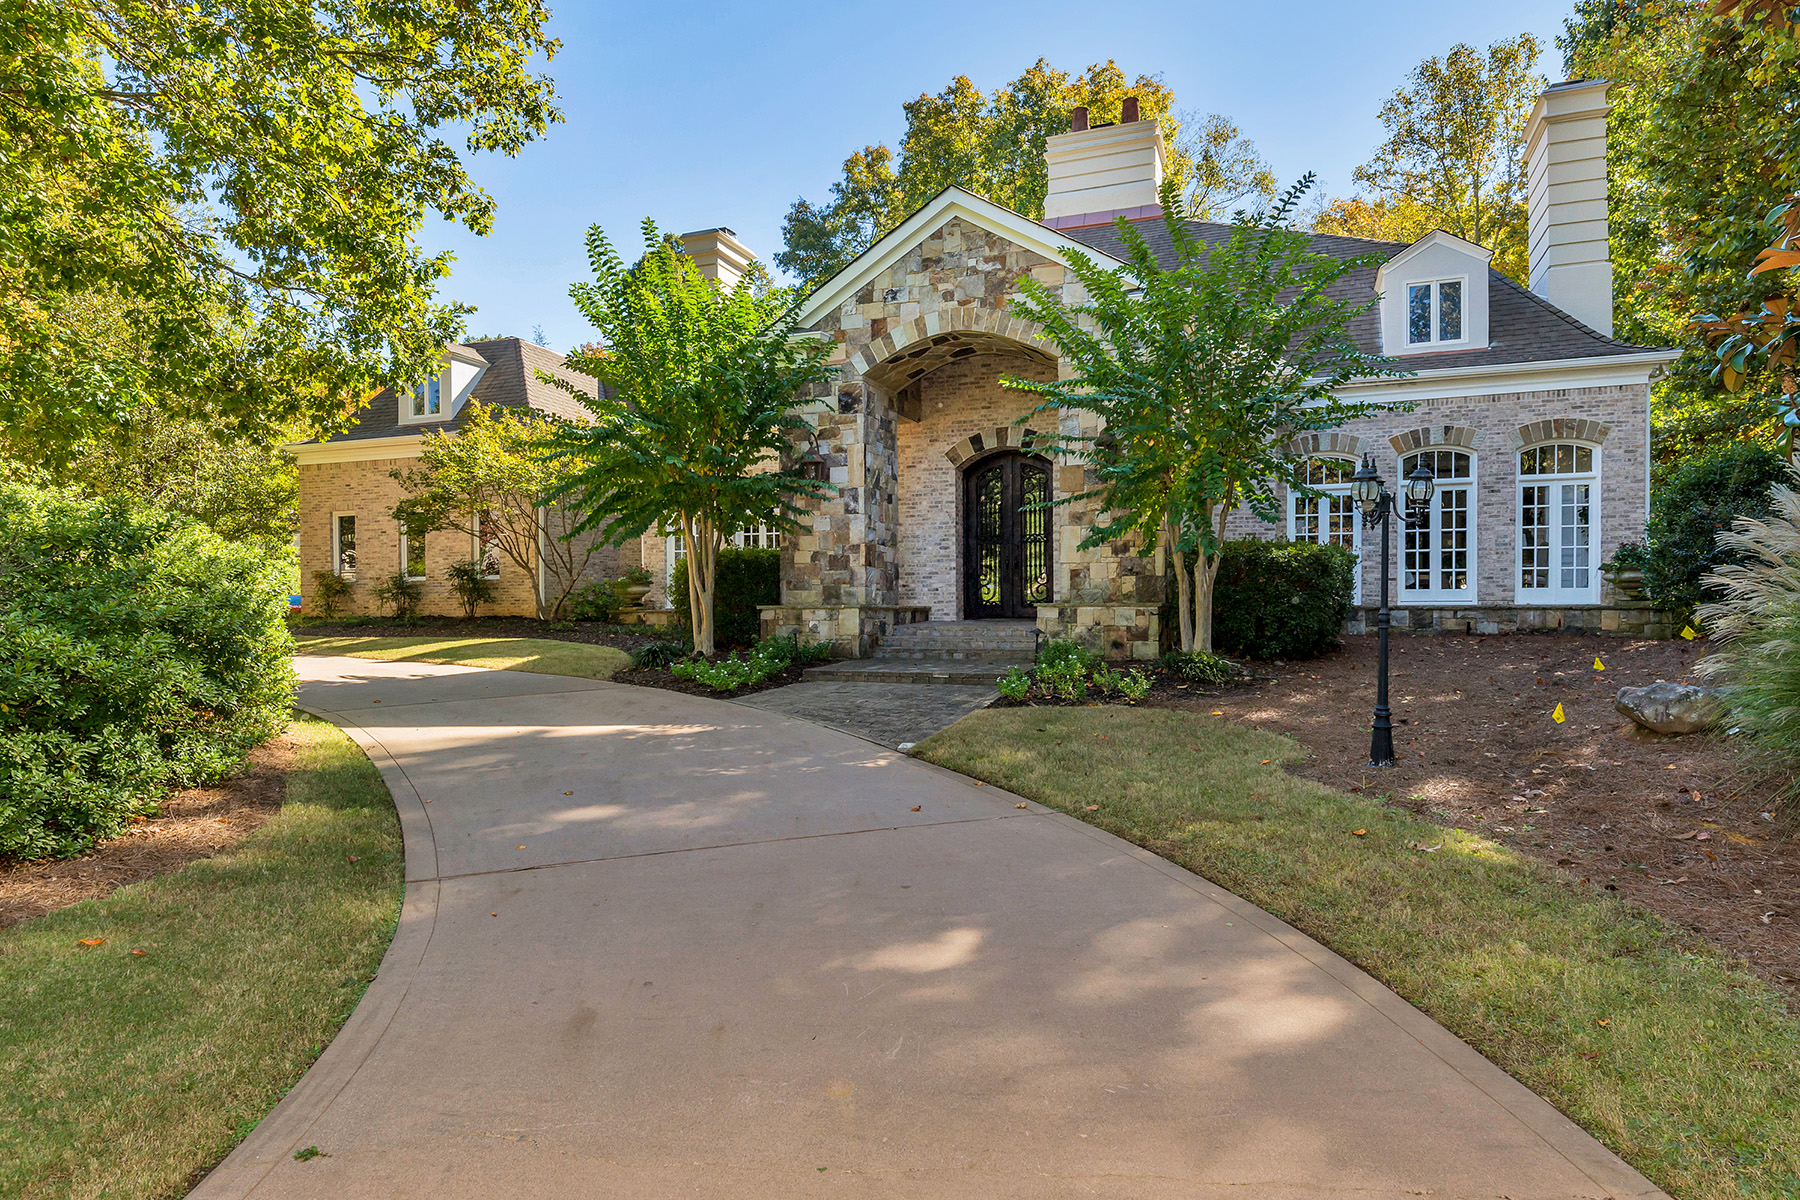 European Elegance in The Heart of Sandy Springs 890 Marseilles Drive Sandy Springs, Georgia 30327 United States